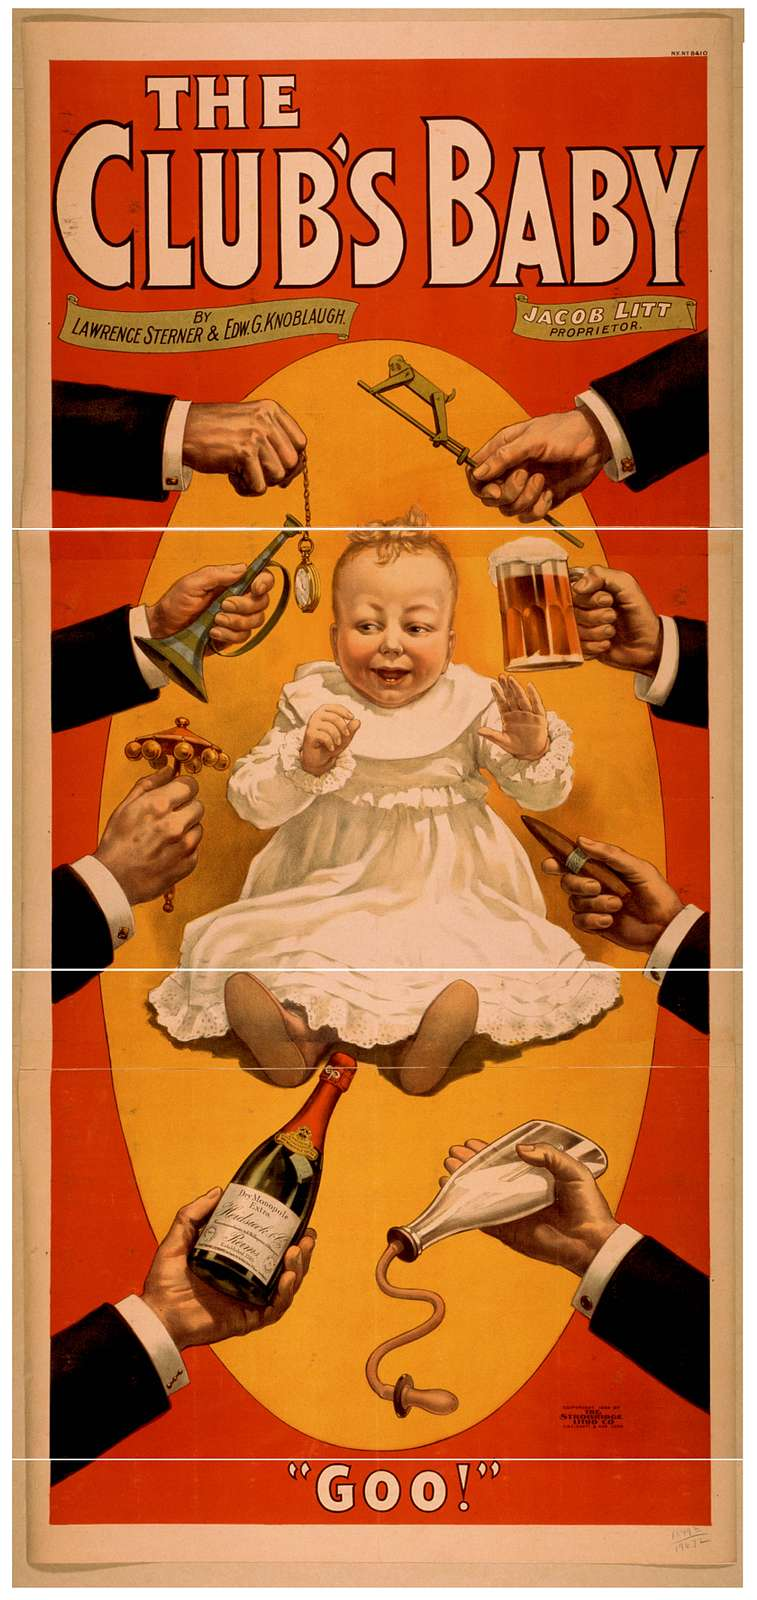 The club's baby by Lawrence Sterner & Edw. G. Knoblaugh.